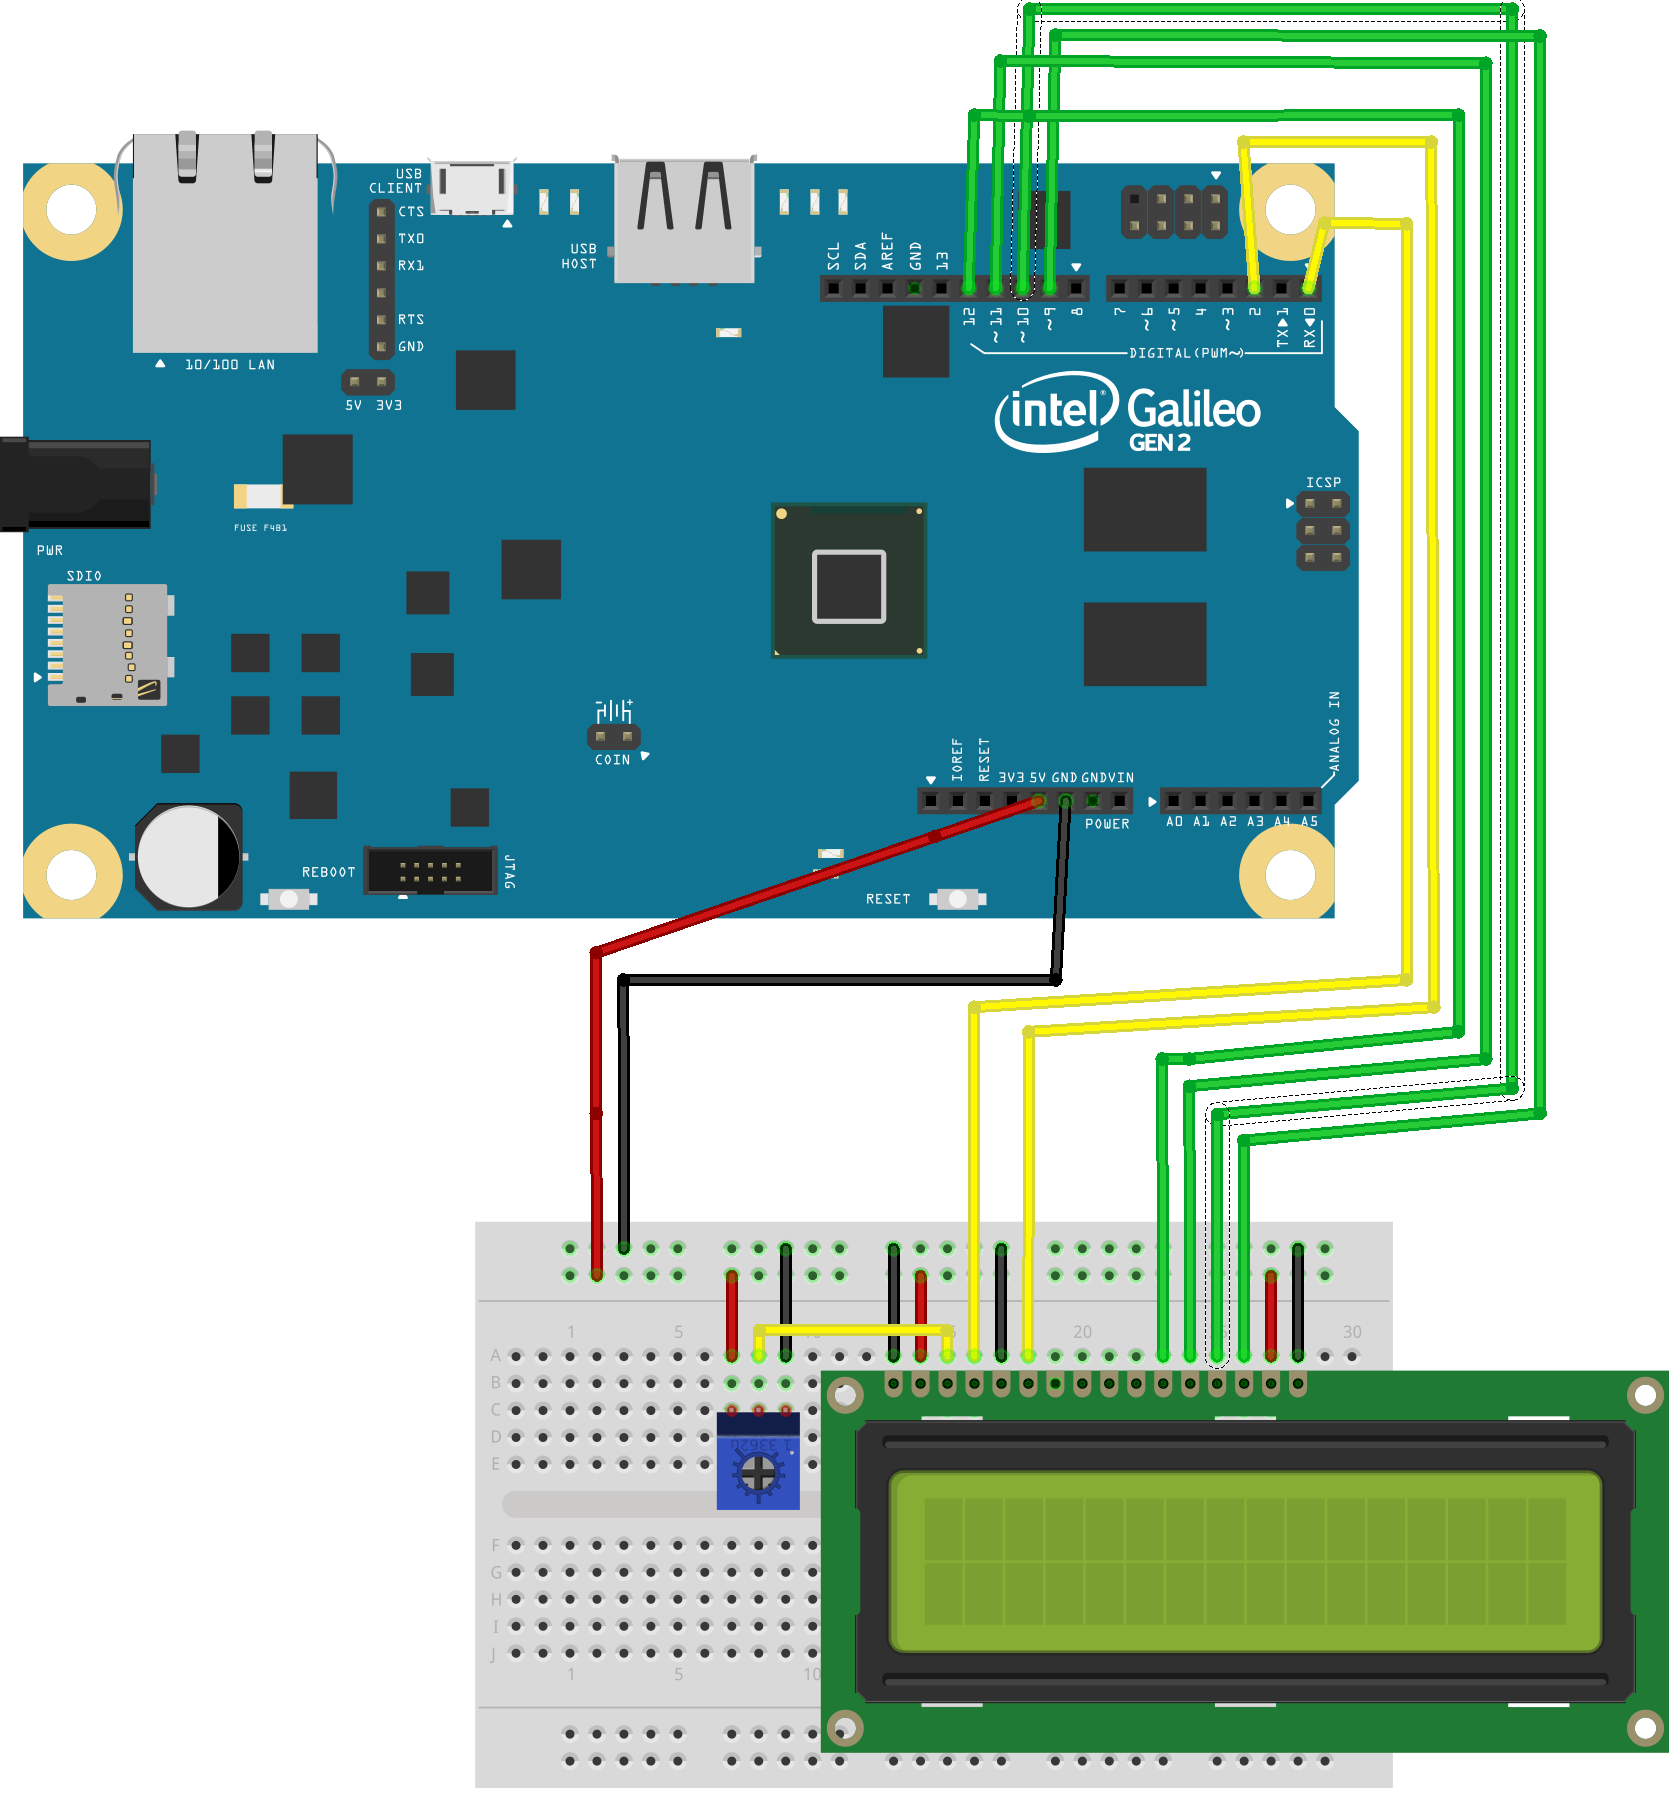 iot2015:labs:lcdgalileo1.png